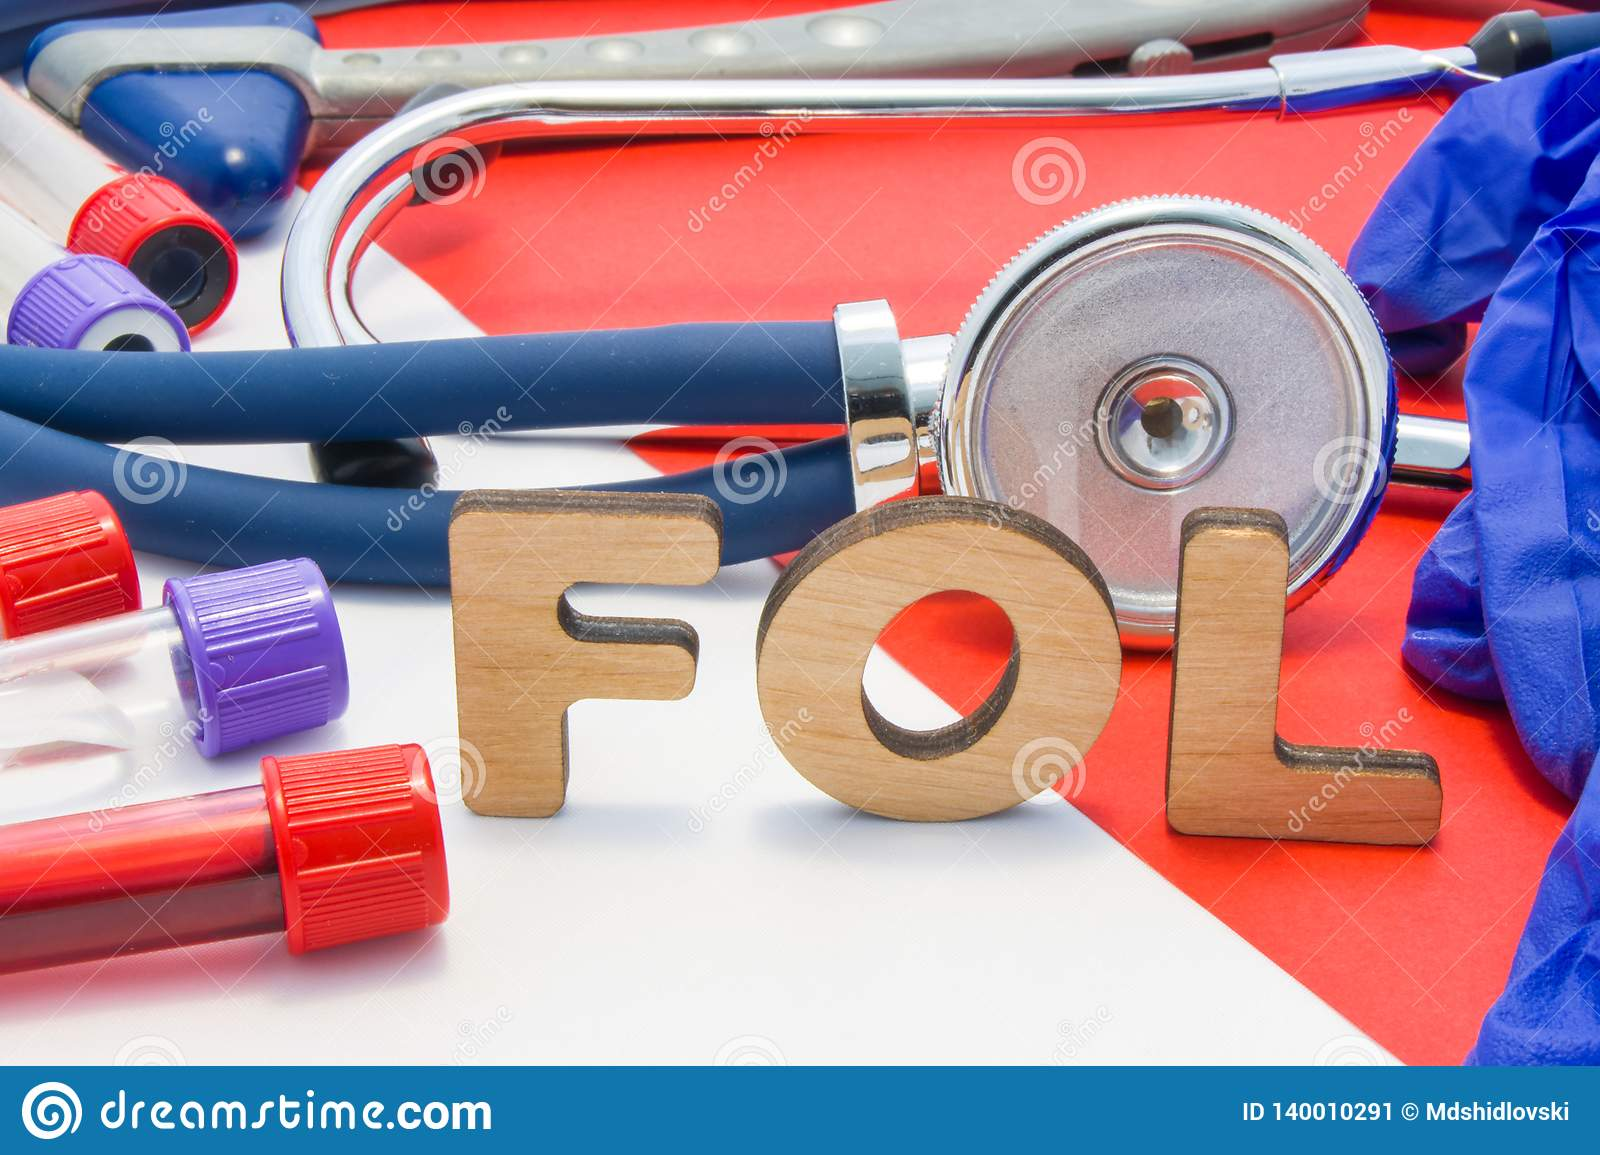 FOL medical abbreviation meaning total folate or folic acid in laboratory diagnostics on red background. Chemical name of FOL is s